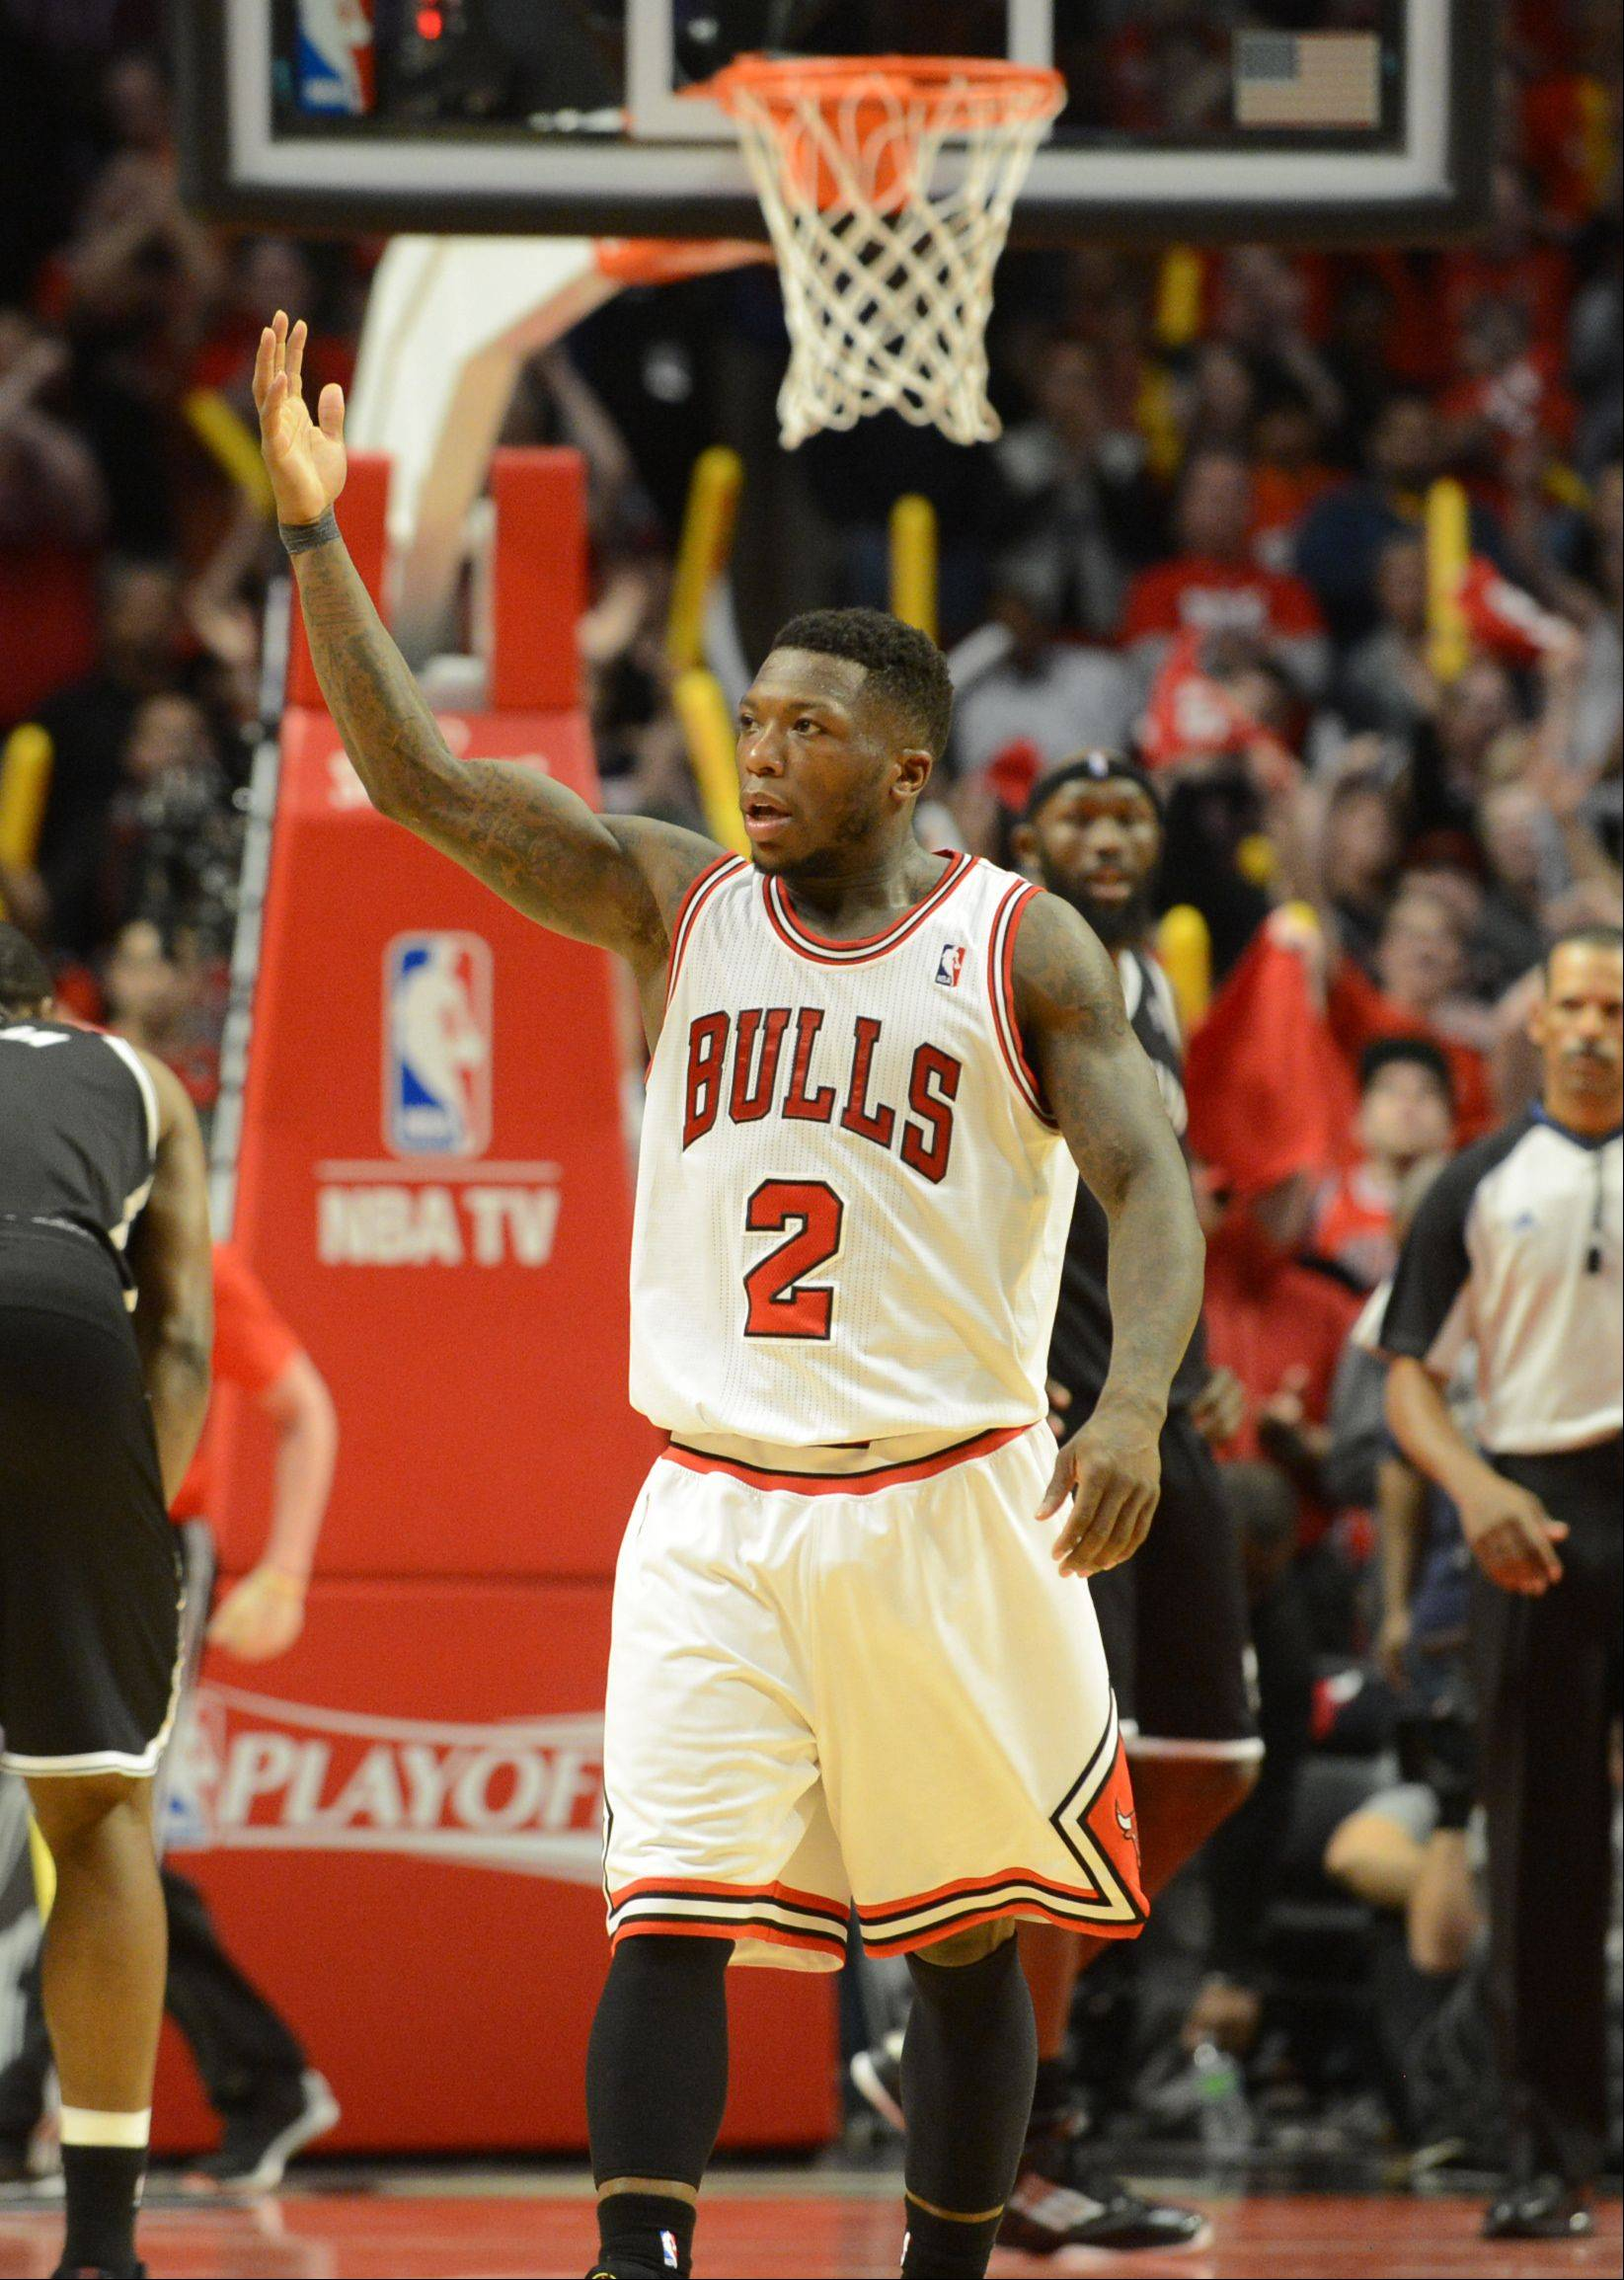 Nate Robinson gets the crowed fired up in the third overtime Saturday during game 4 of the first round playoff game against the Brooklyn Nets at the United Center. The Bulls won 142-134.